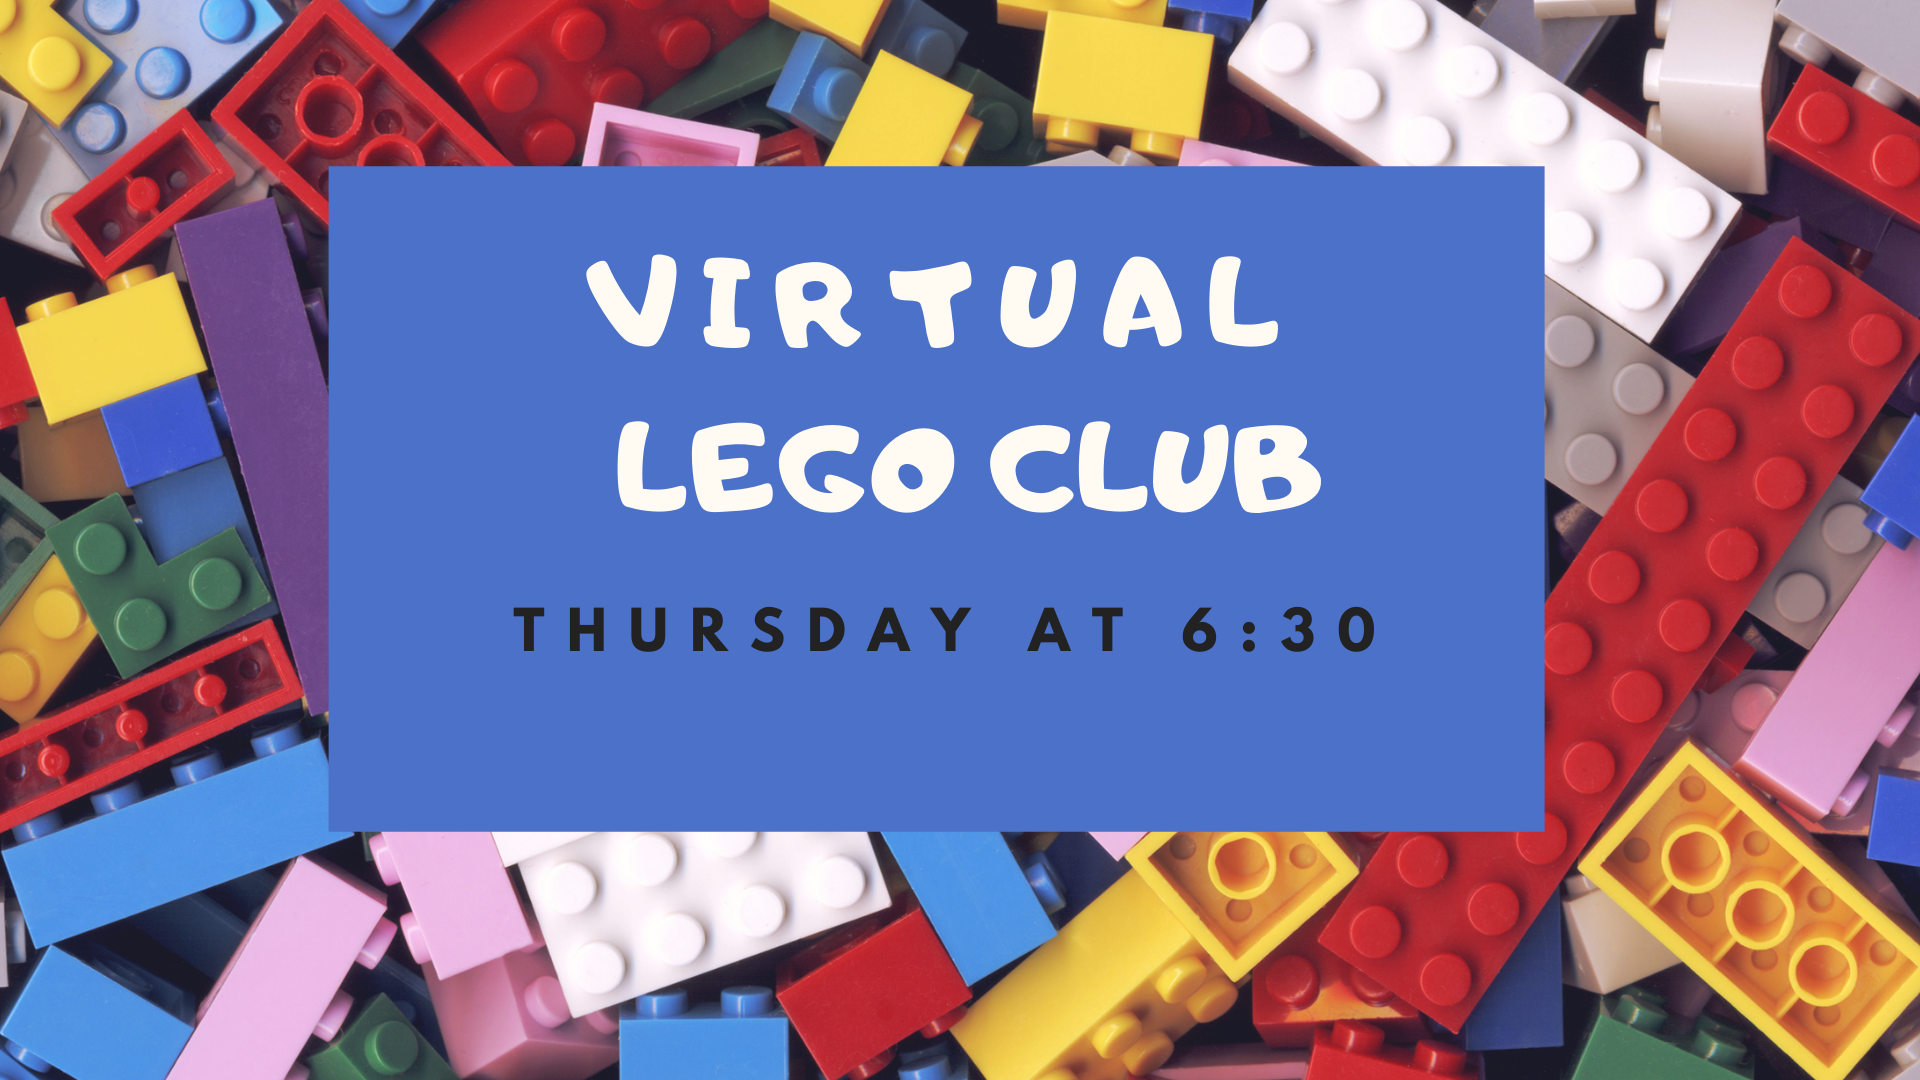 Ad for Lego Club with a photo of Lego bricks in the background.